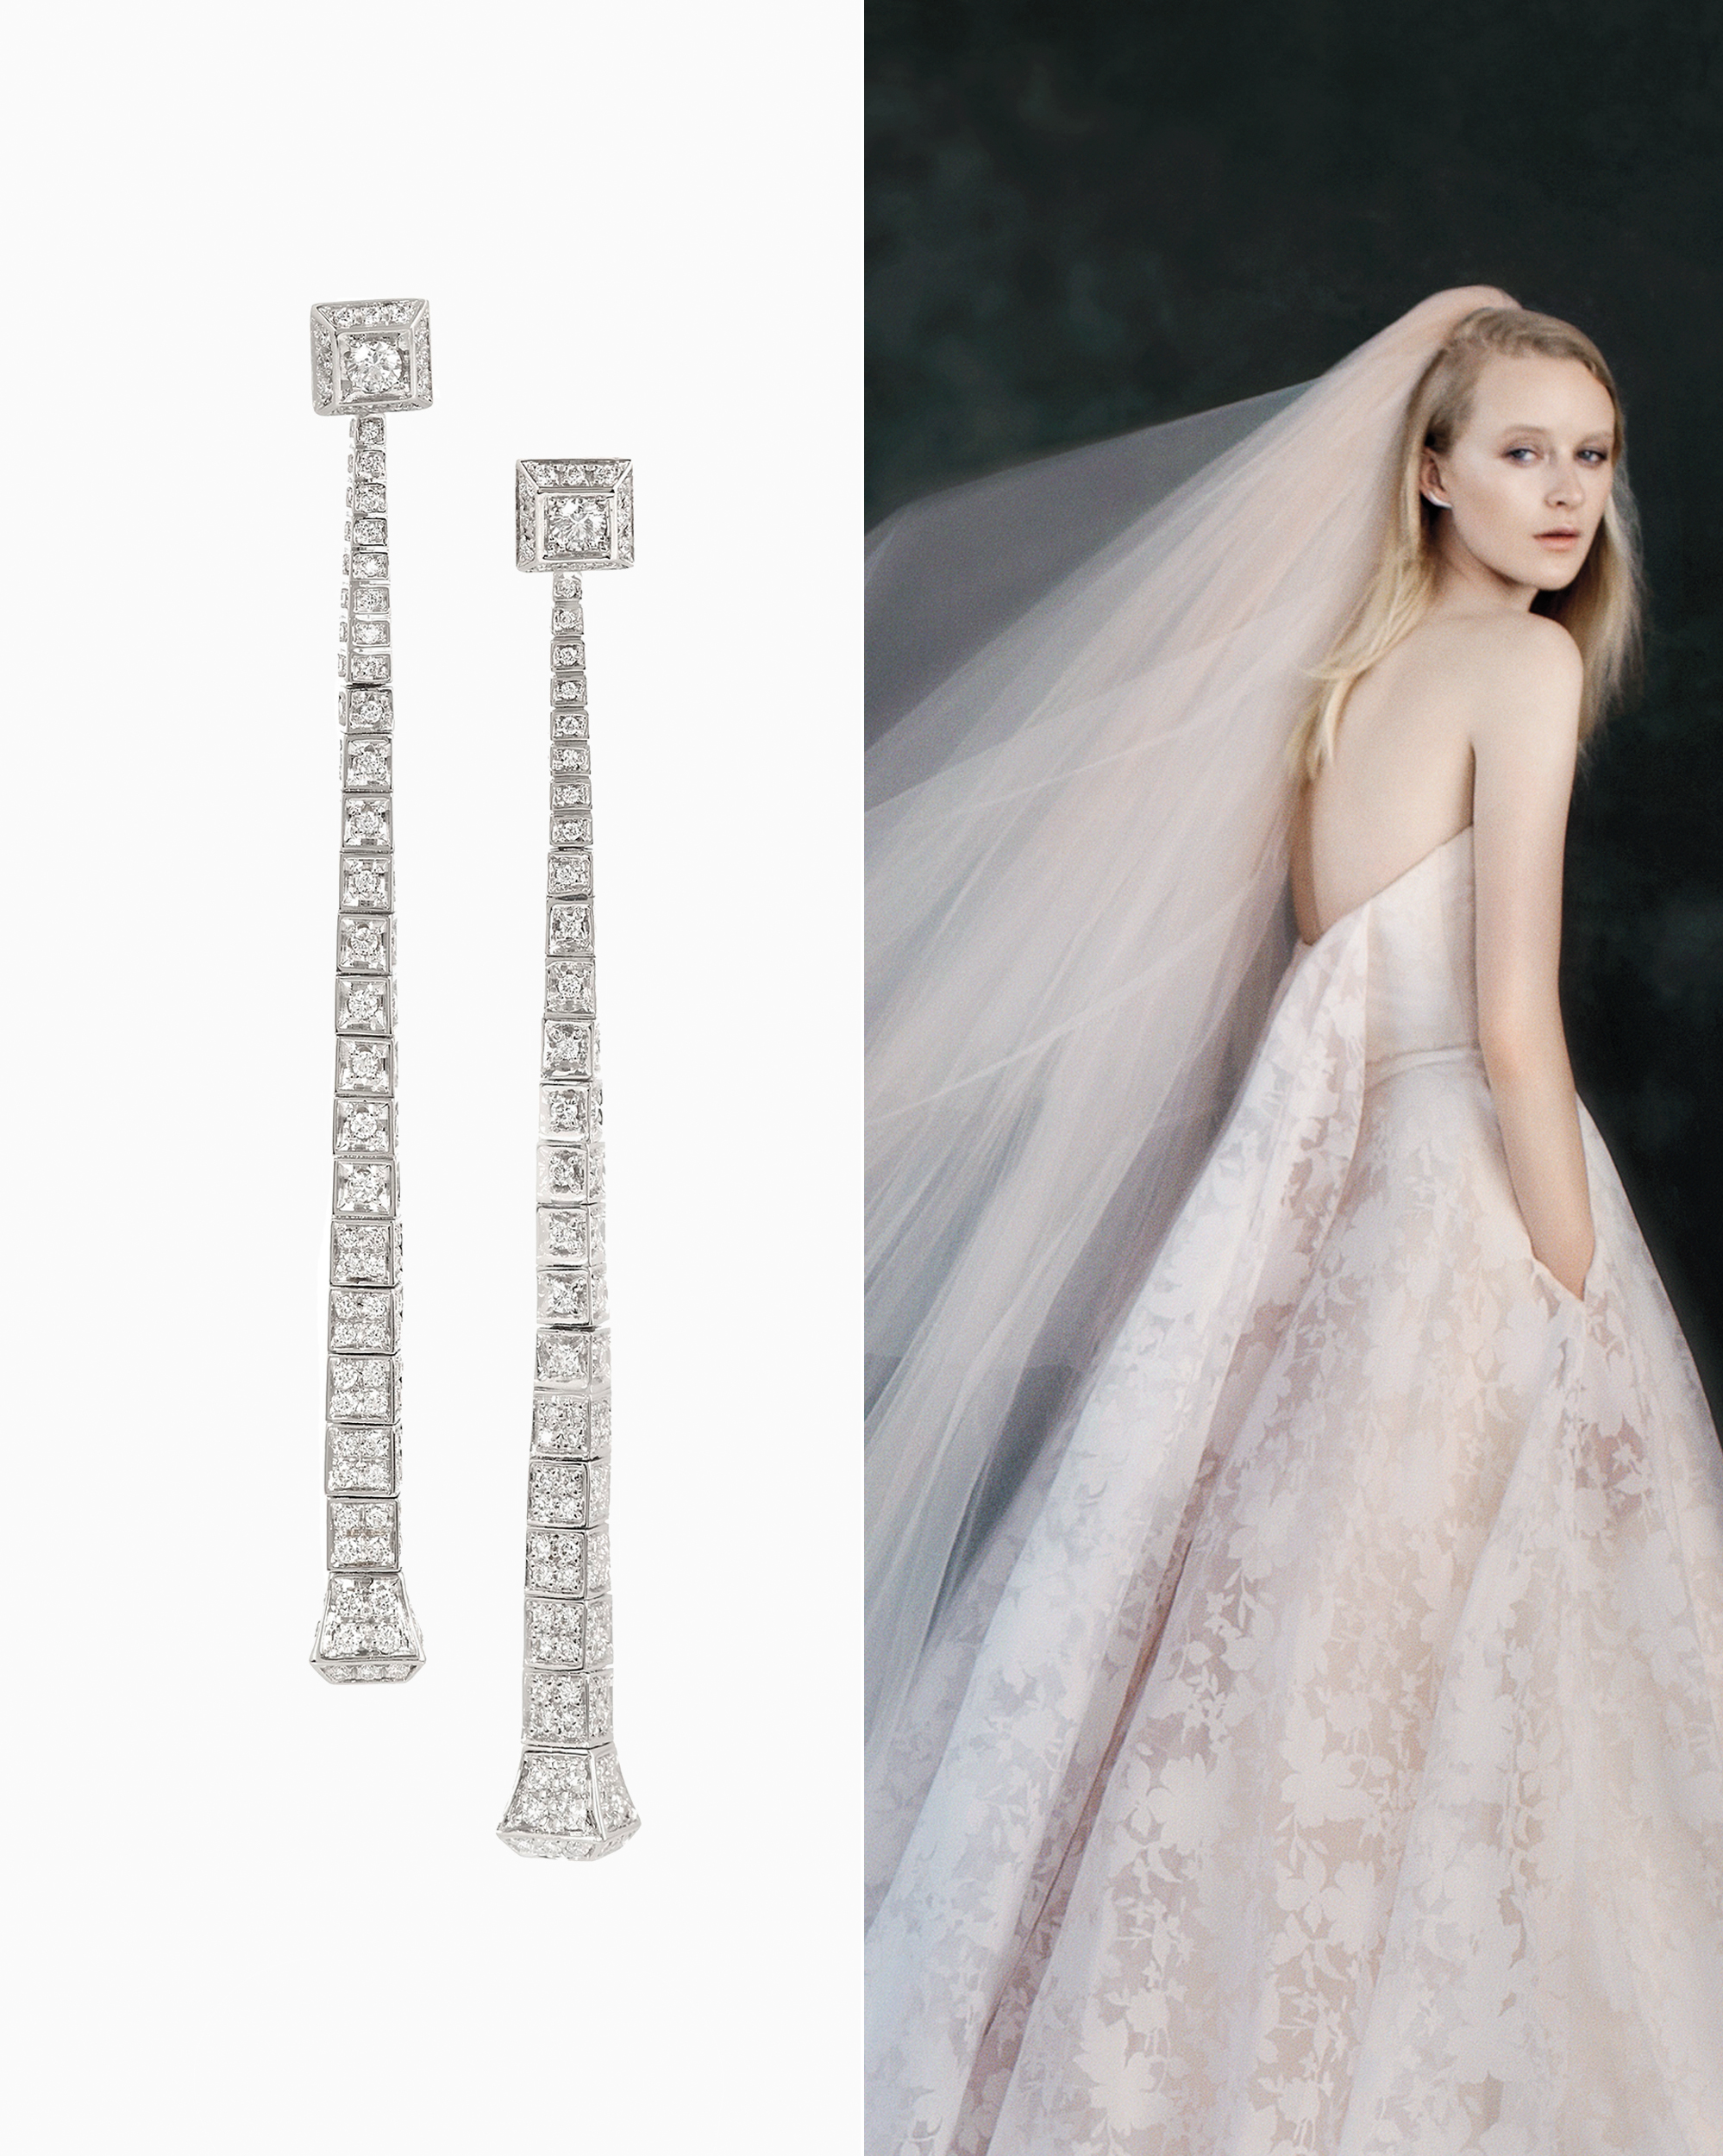 veil-earring-pairs-cathedral-veil-gucci-chiodo-1115.jpg